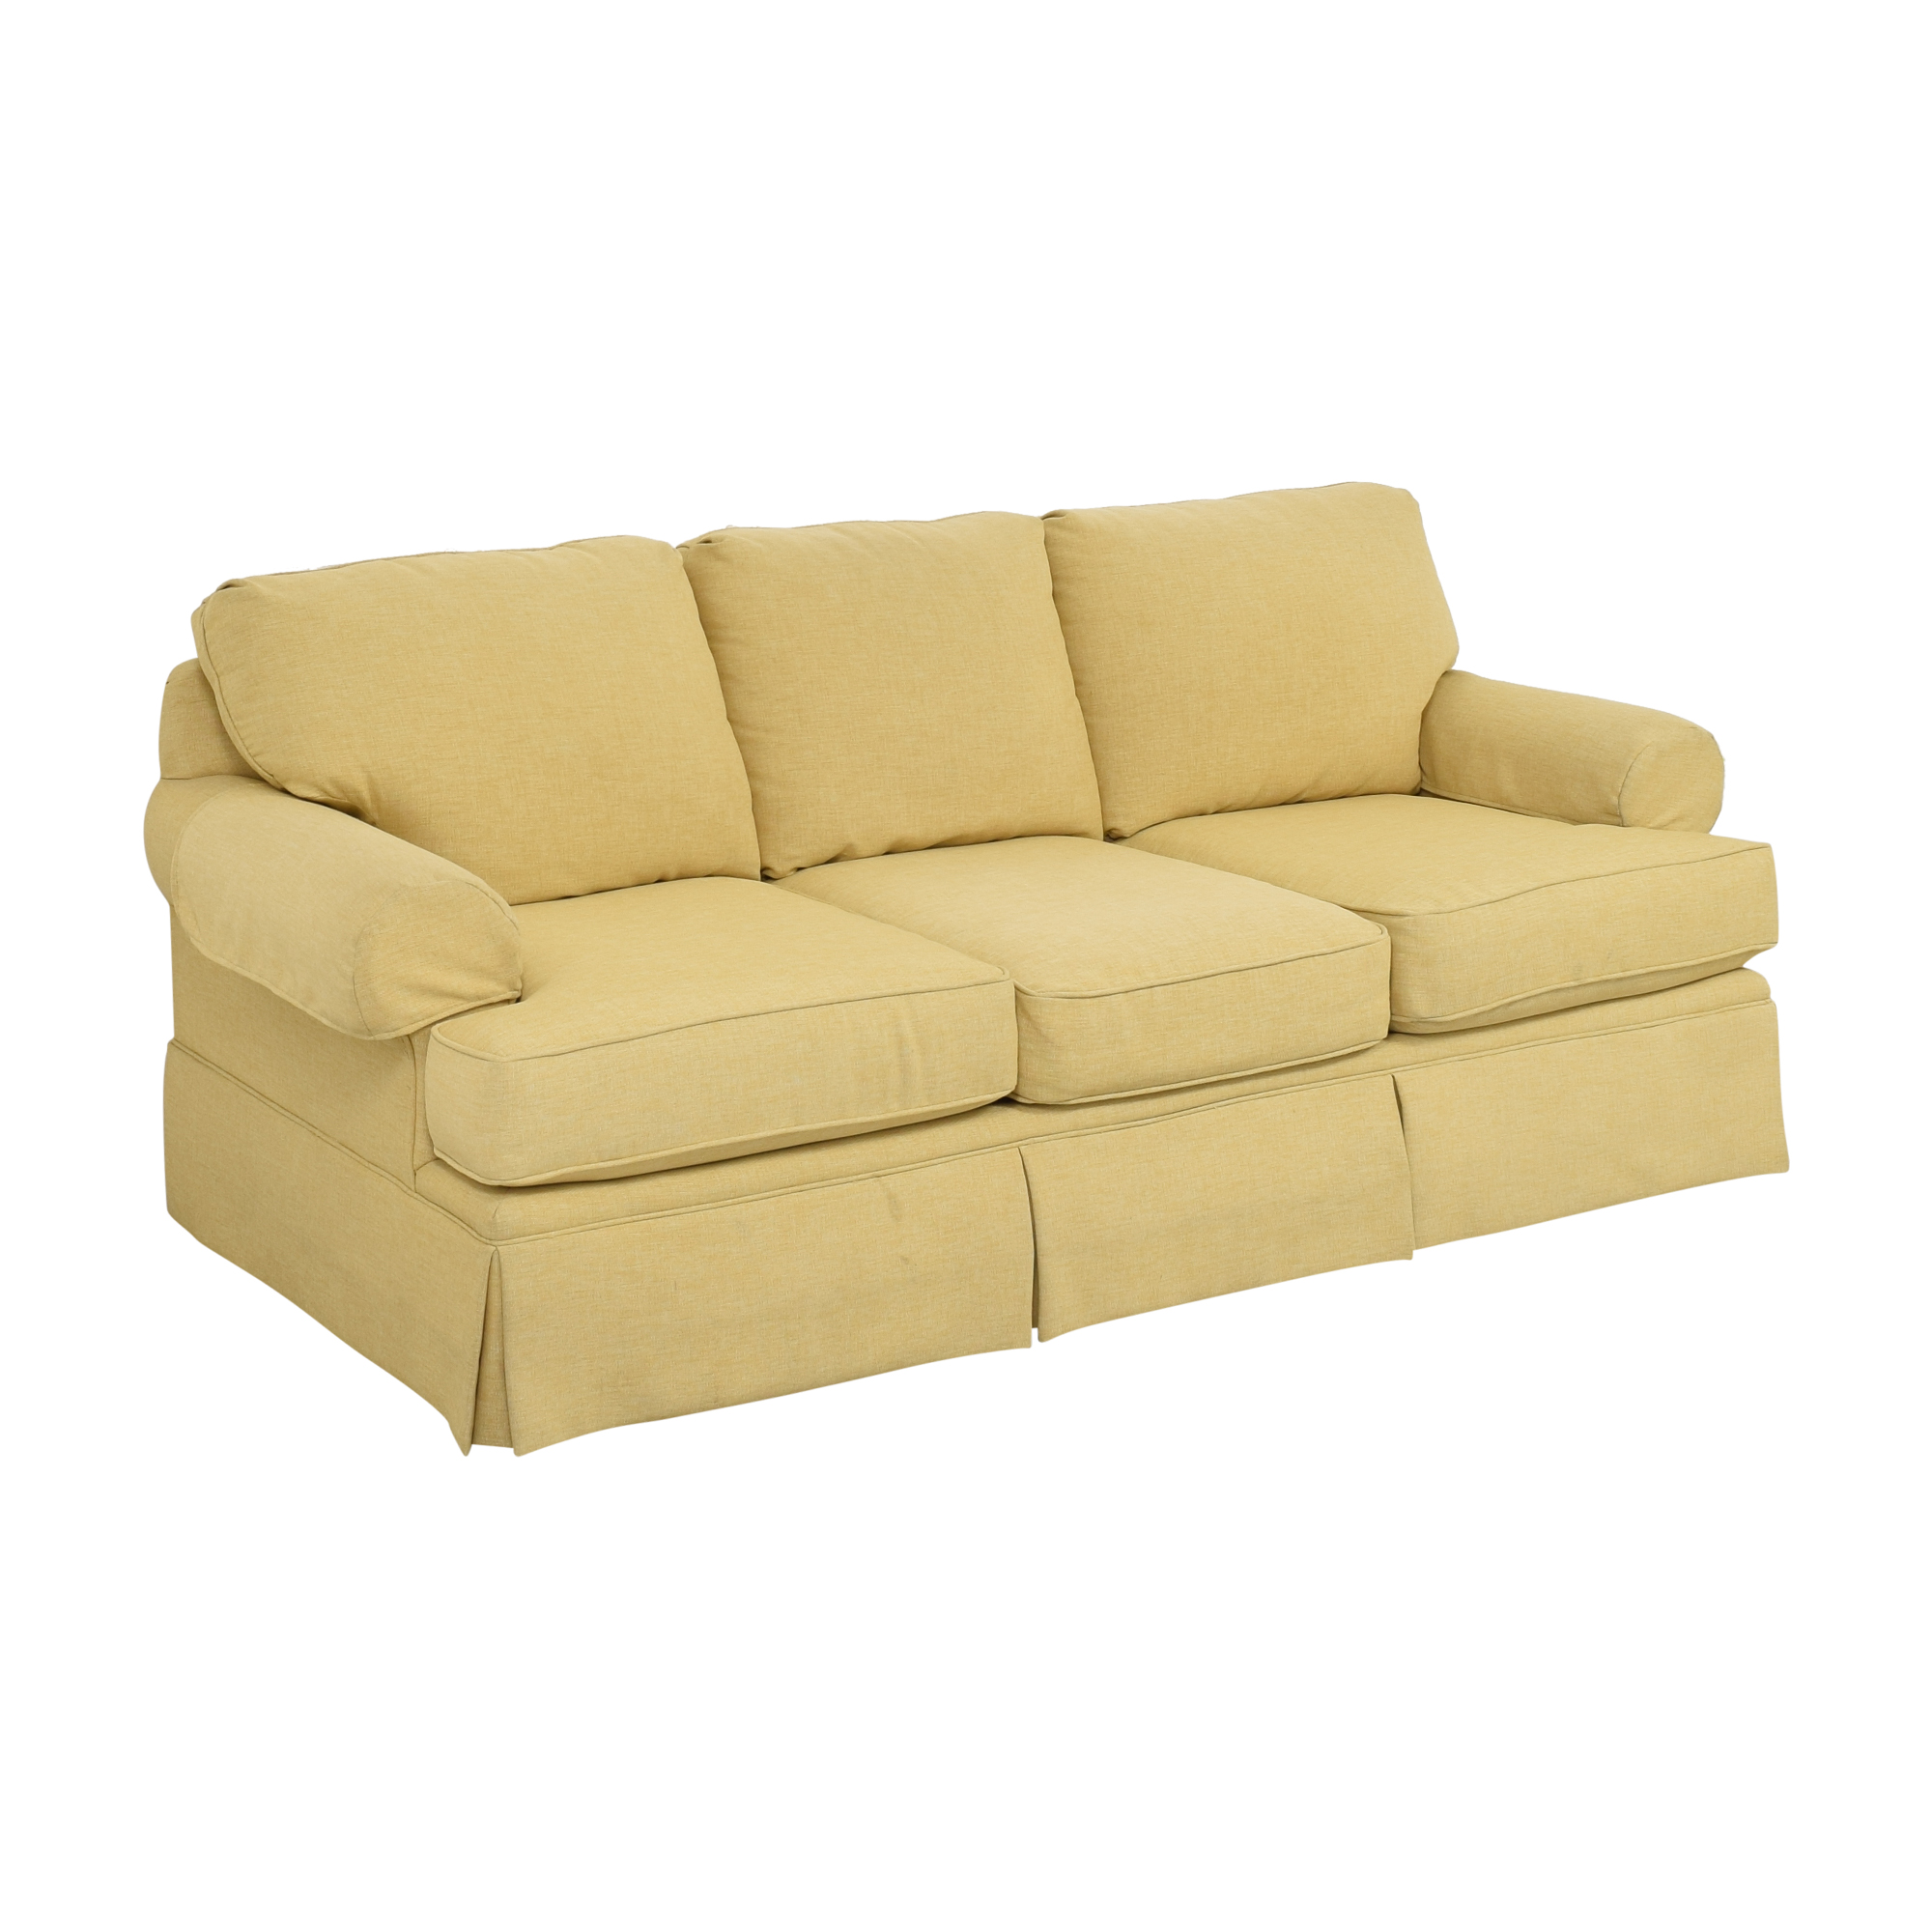 shop Craftmaster Furniture Three Cushion Sofa Craftmaster Furniture Classic Sofas